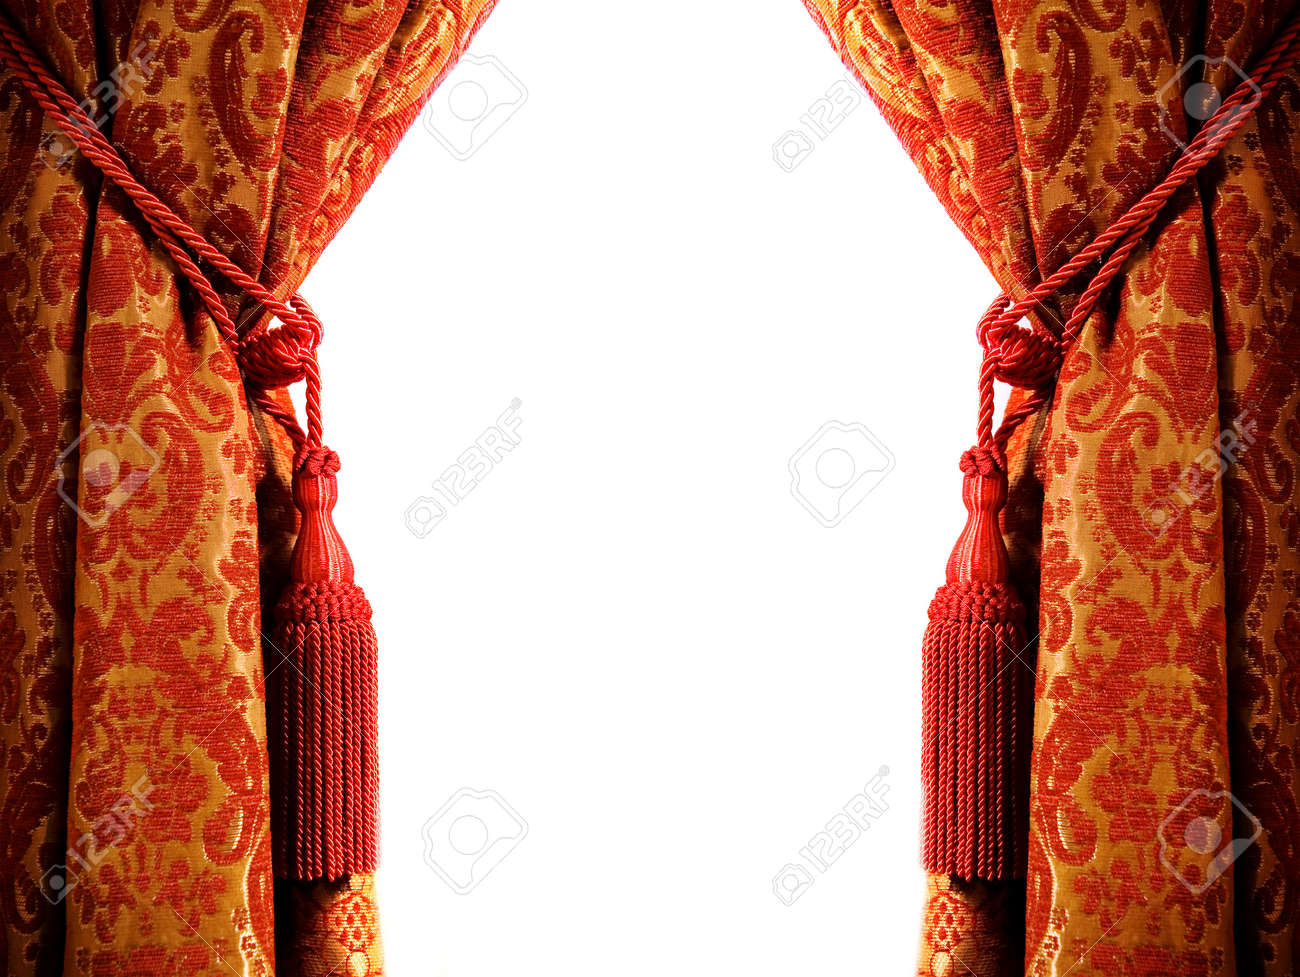 Luxury curtain with a copy-space in the middle Stock Photo - 2222059